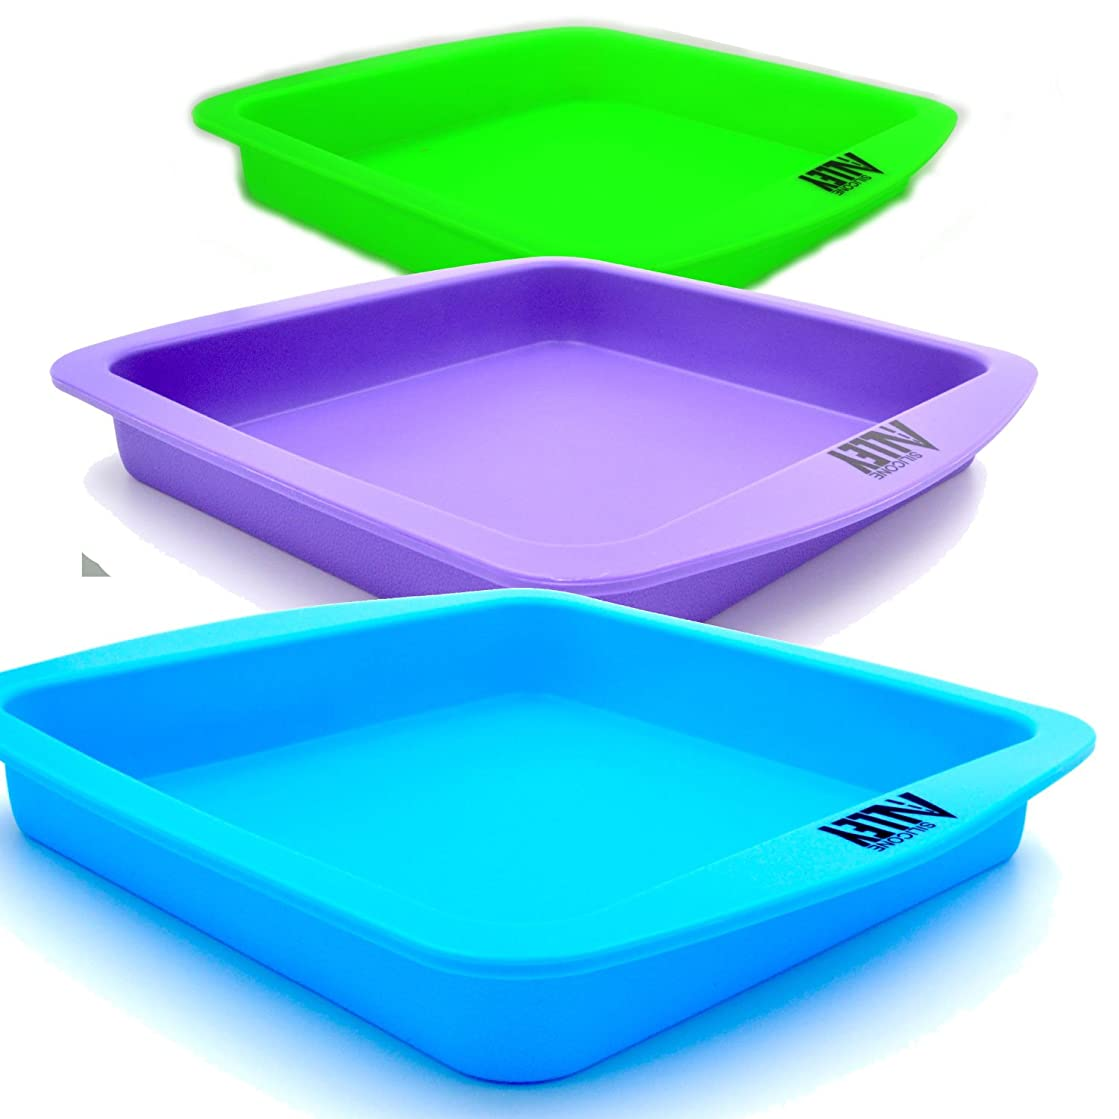 Wax Deep Dish Container Tray - Bulk Set of 3 - Assorted Colors